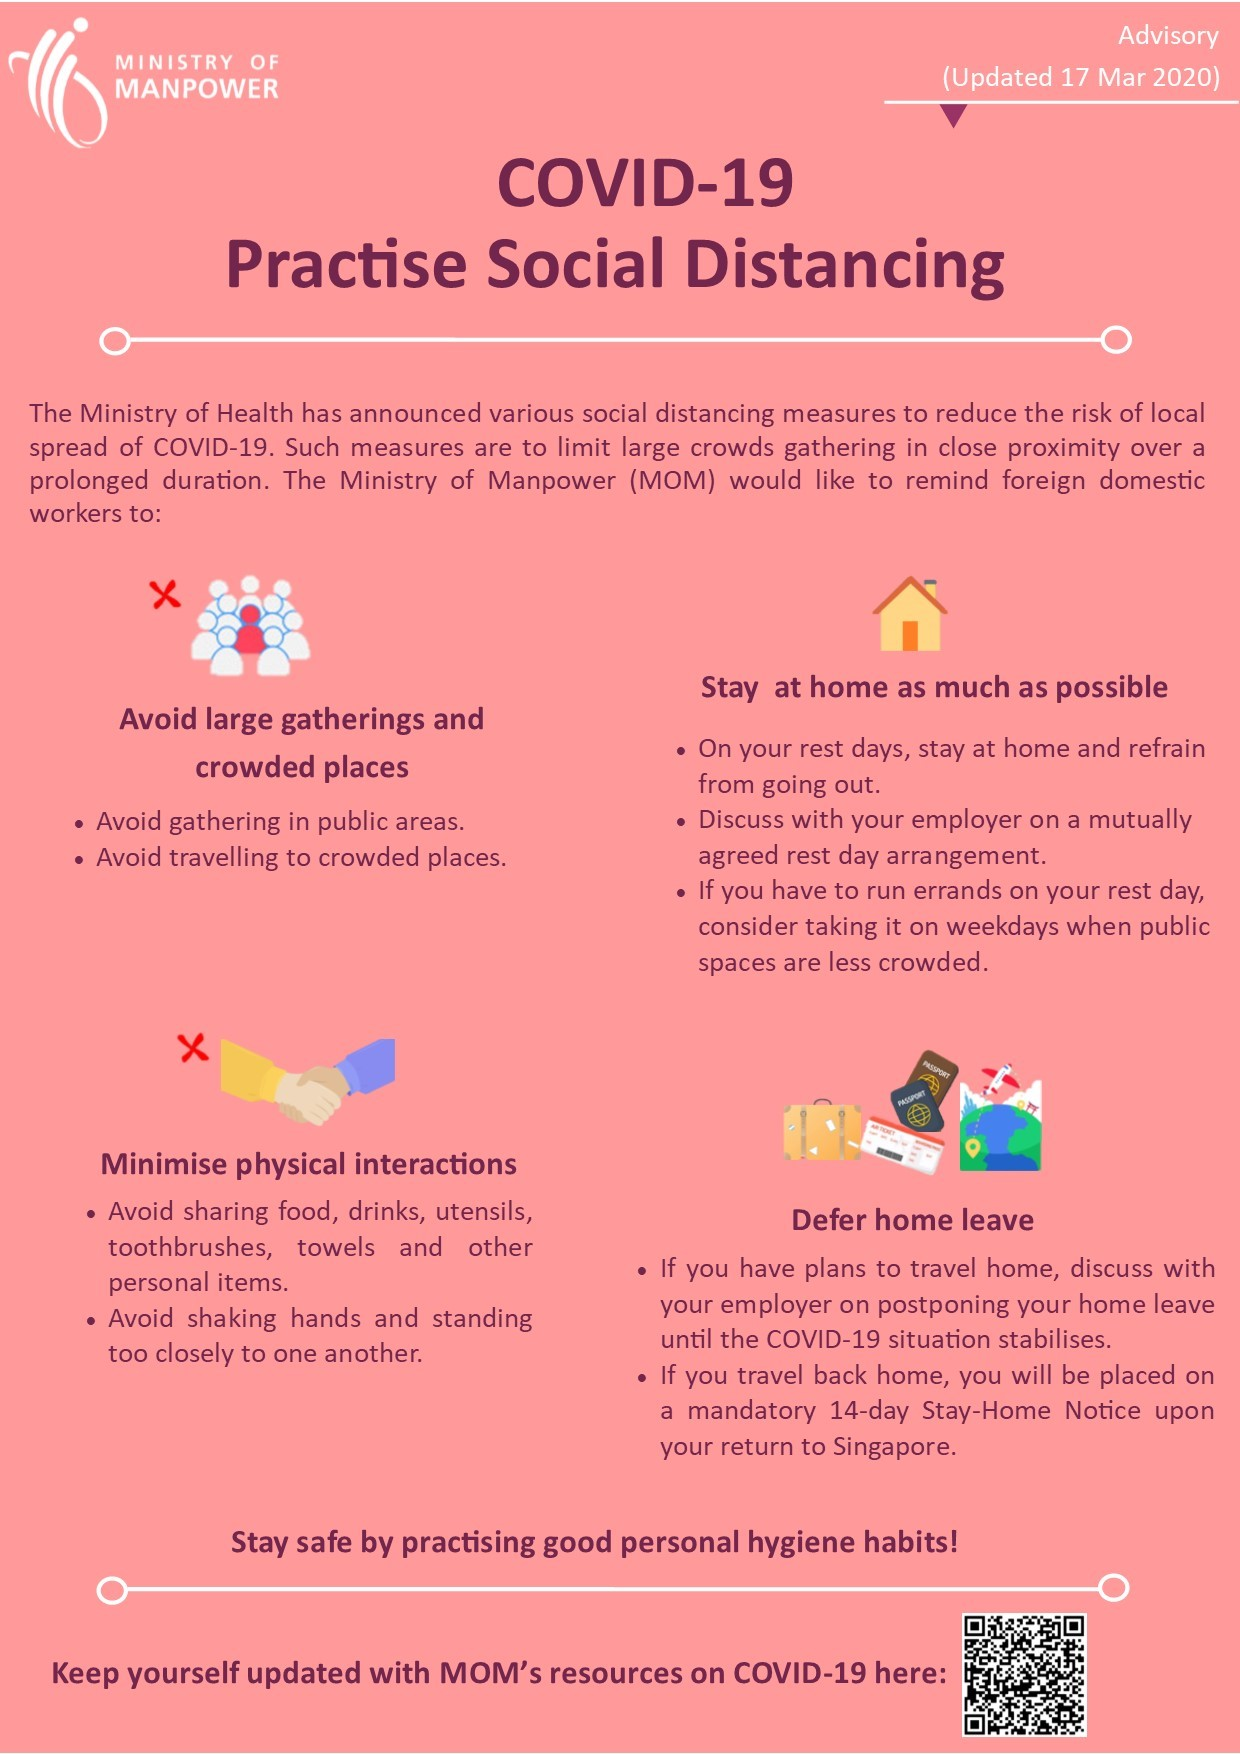 Practise social distancing